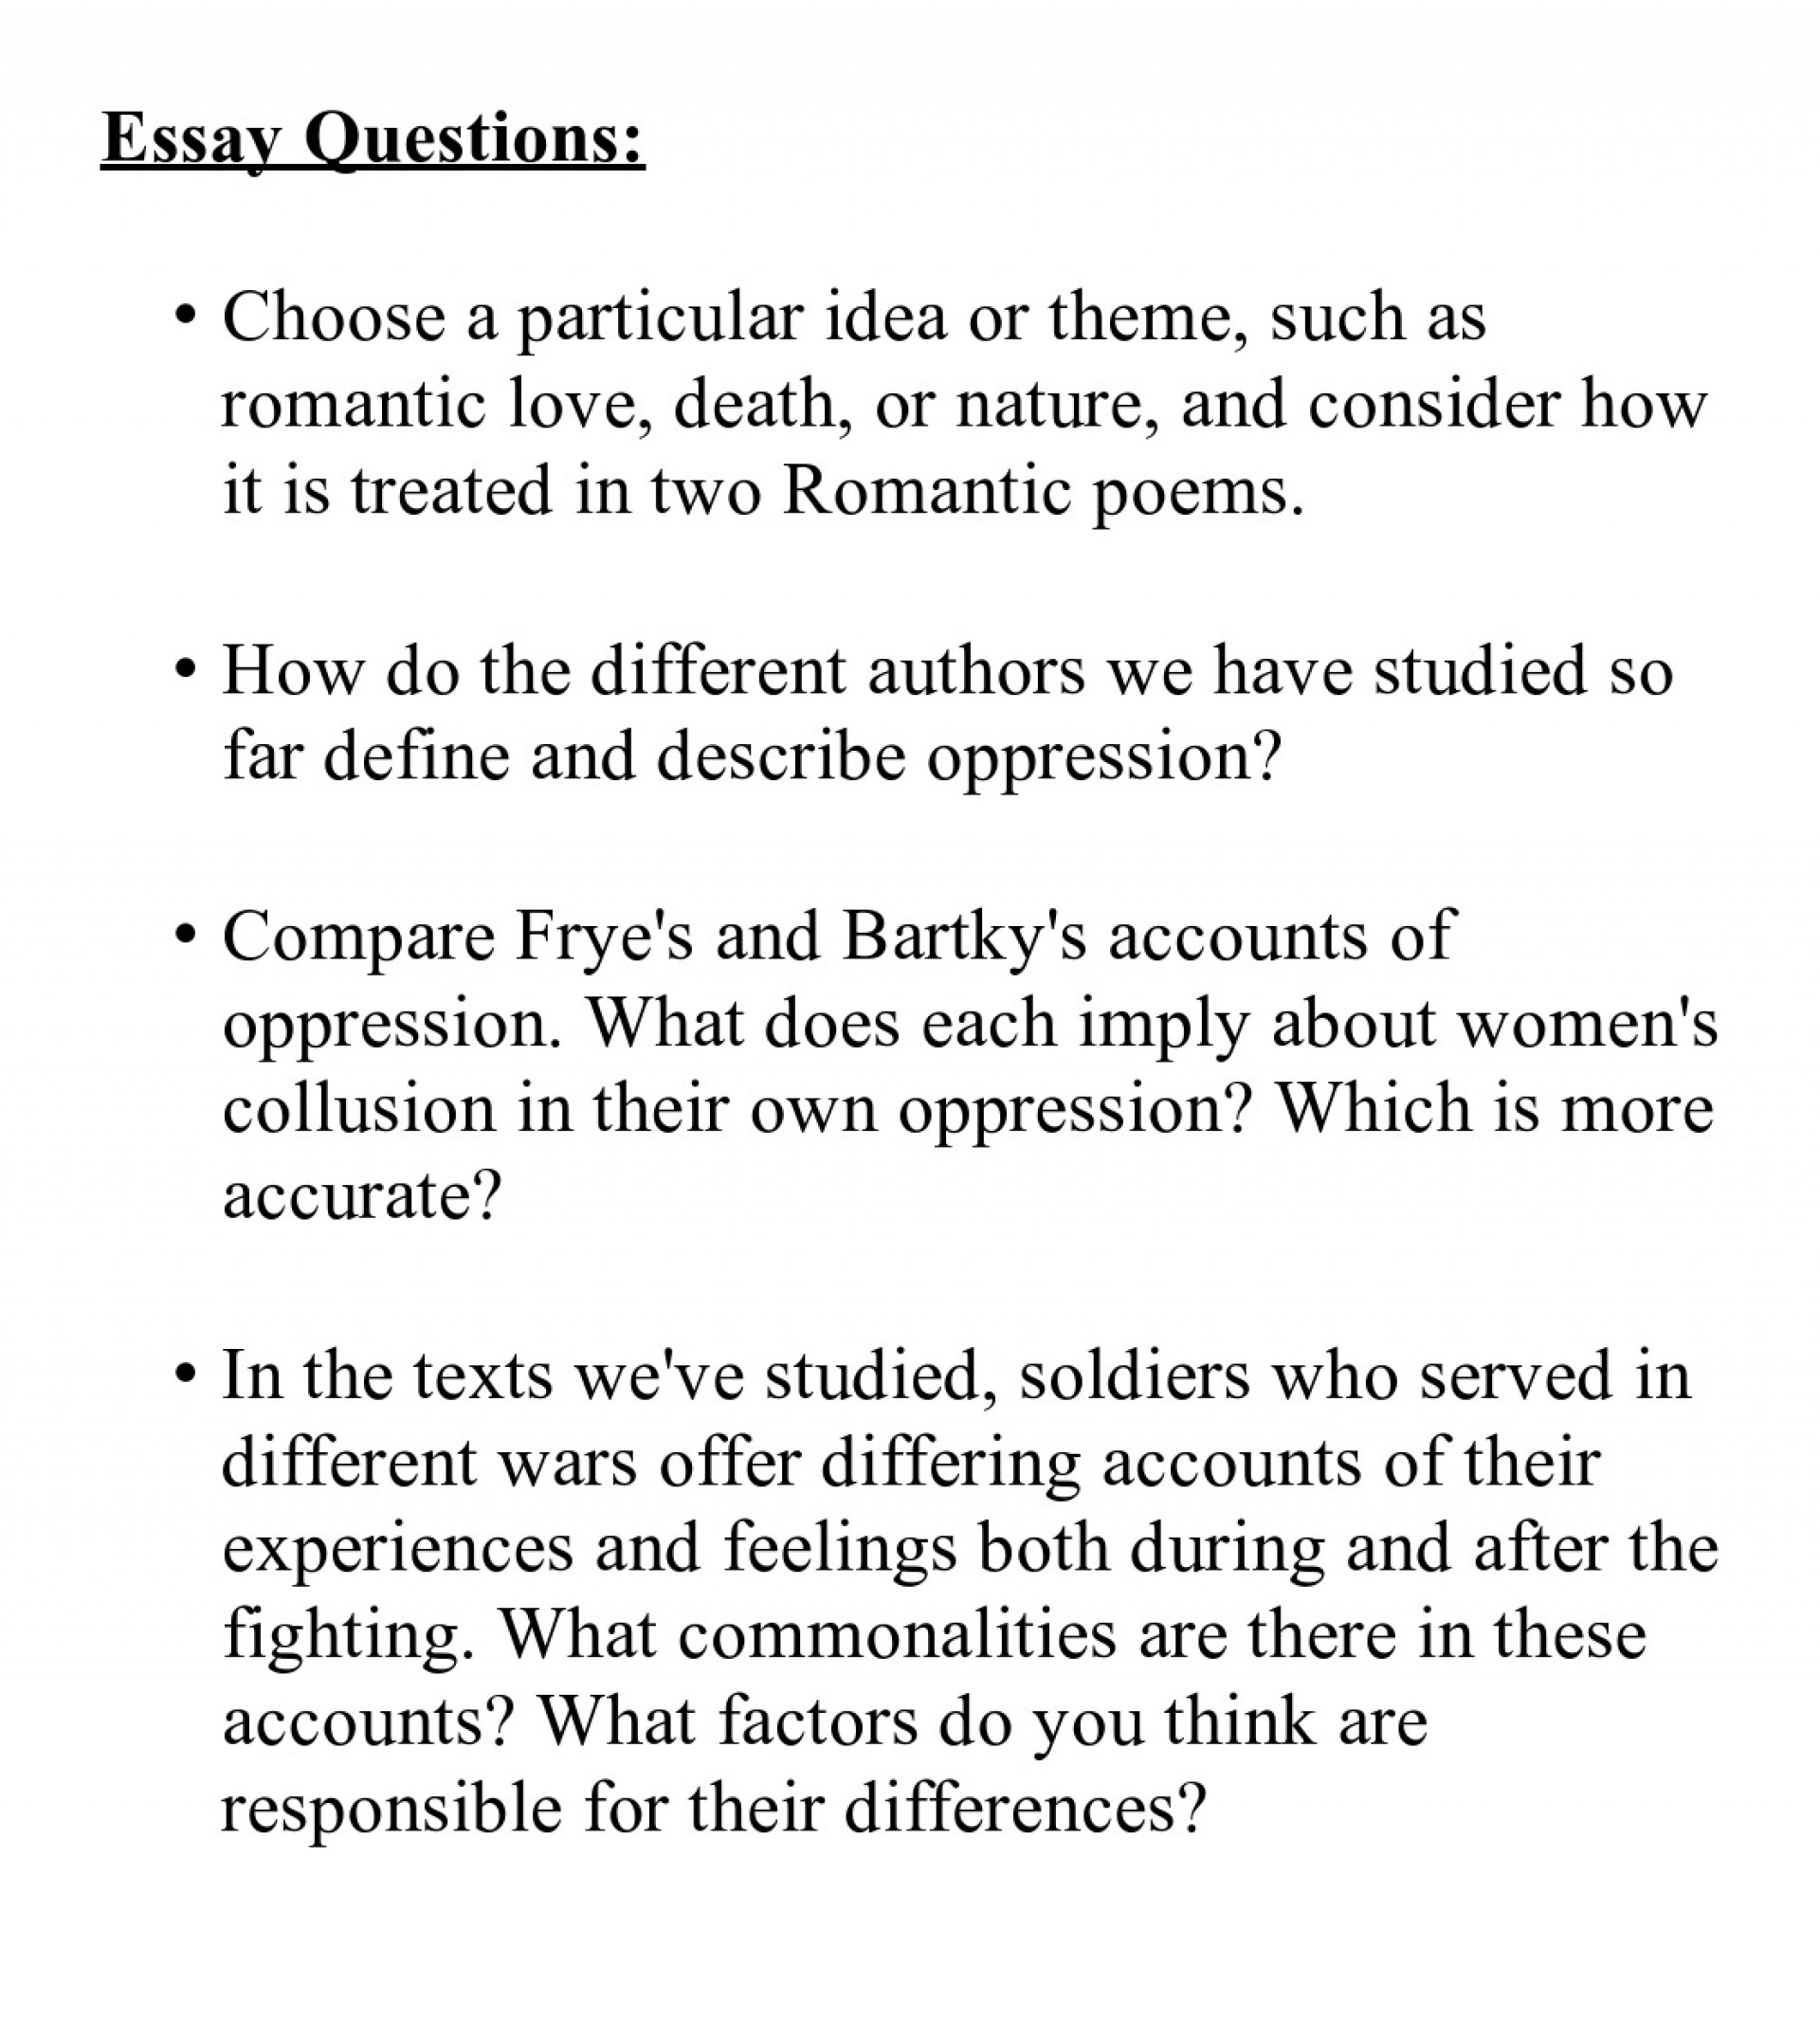 001 Essay Questions Questionss Beautiful Examples Exam Extended Response Question Cma 1920